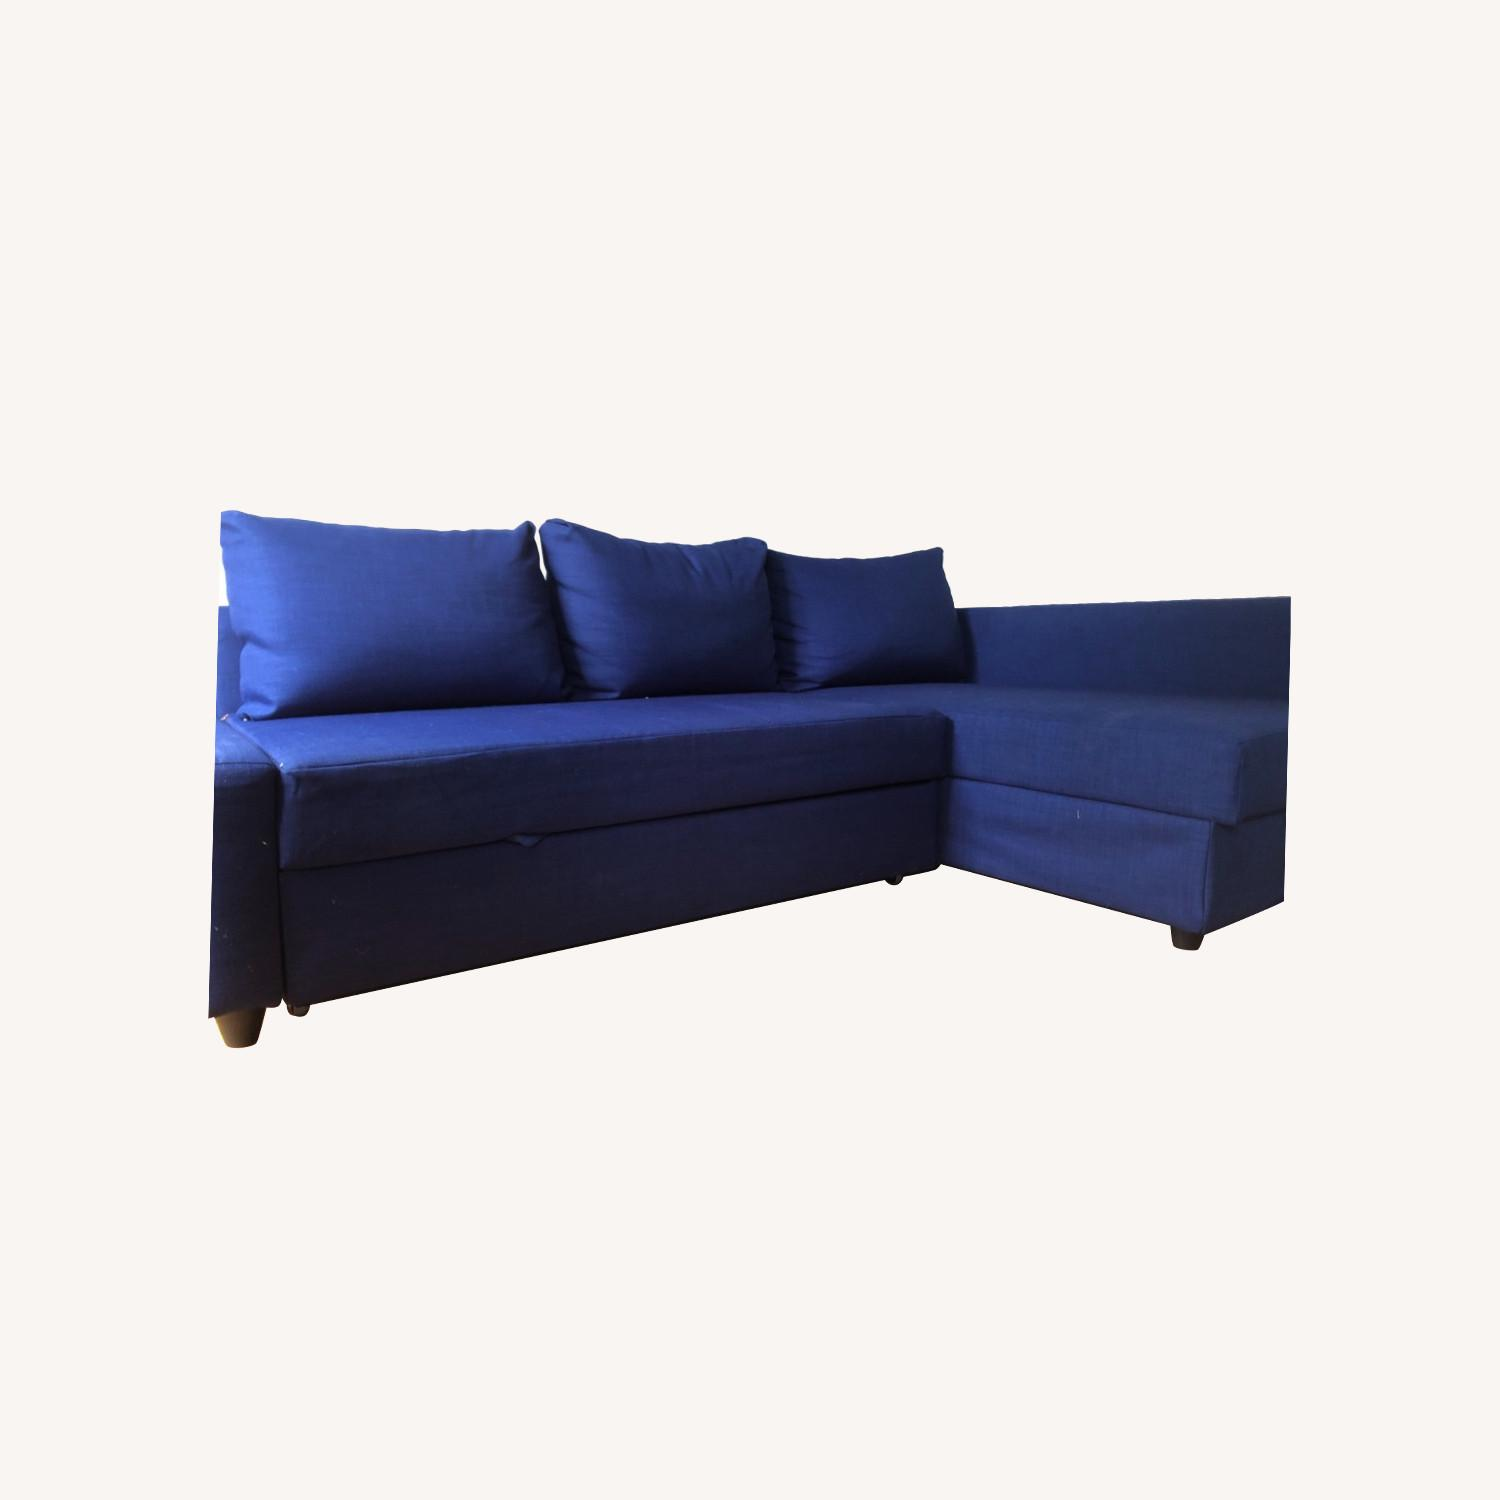 IKEA L-shaped Sofa in blue - image-0